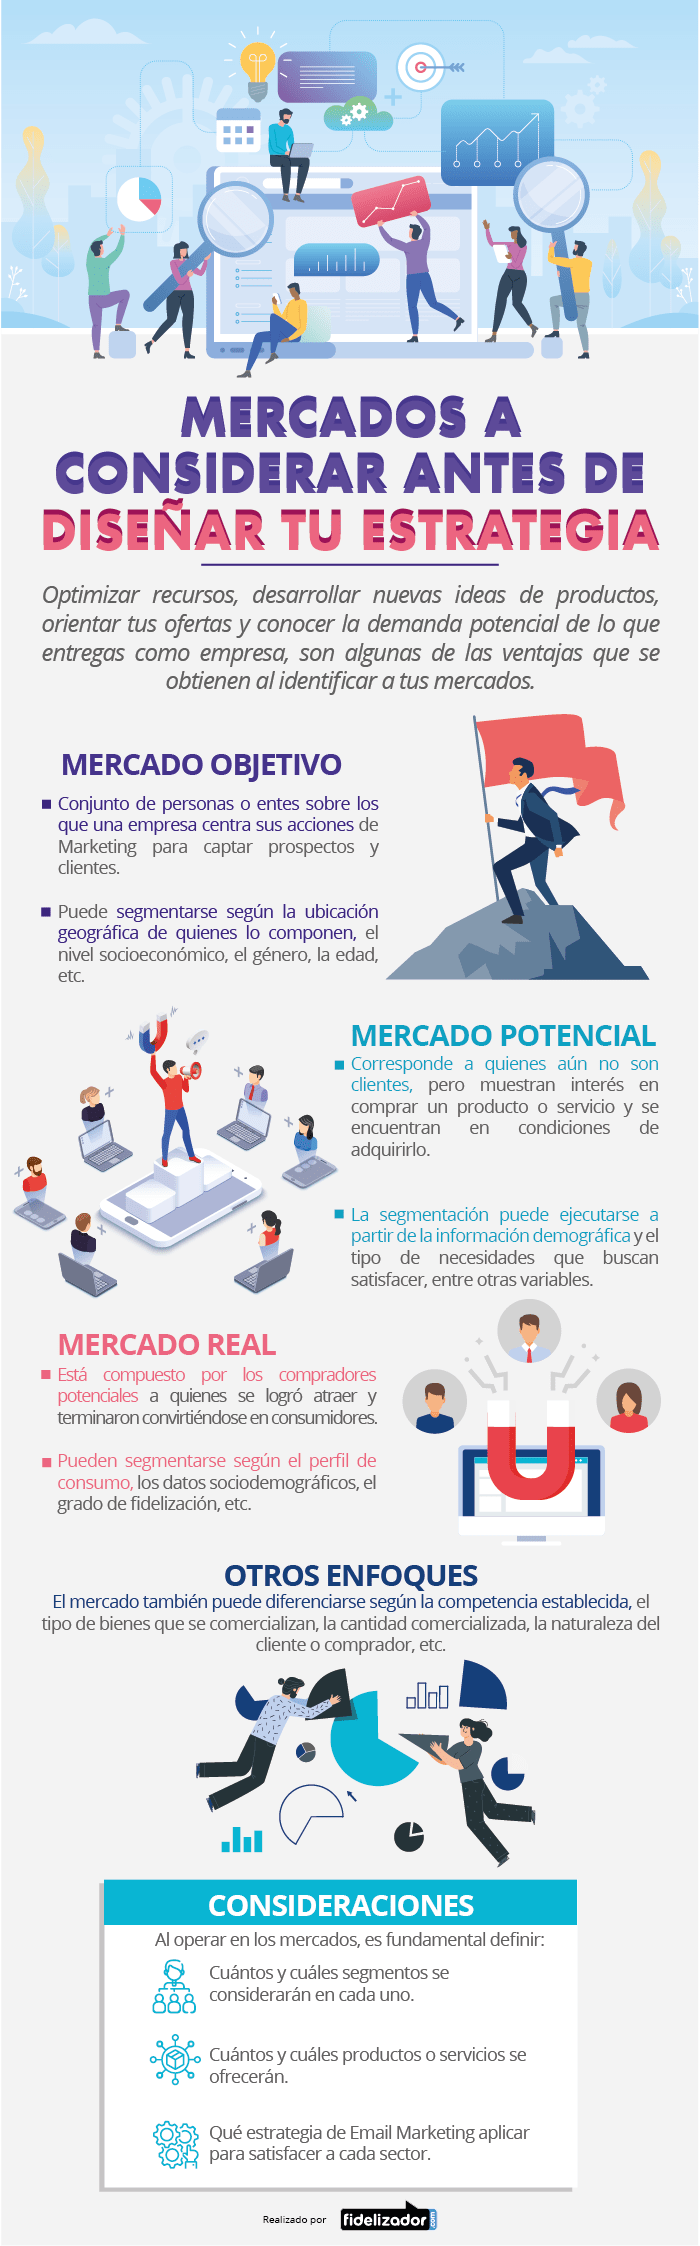 Mercados a considerar para crear tu estrategia de email marketing